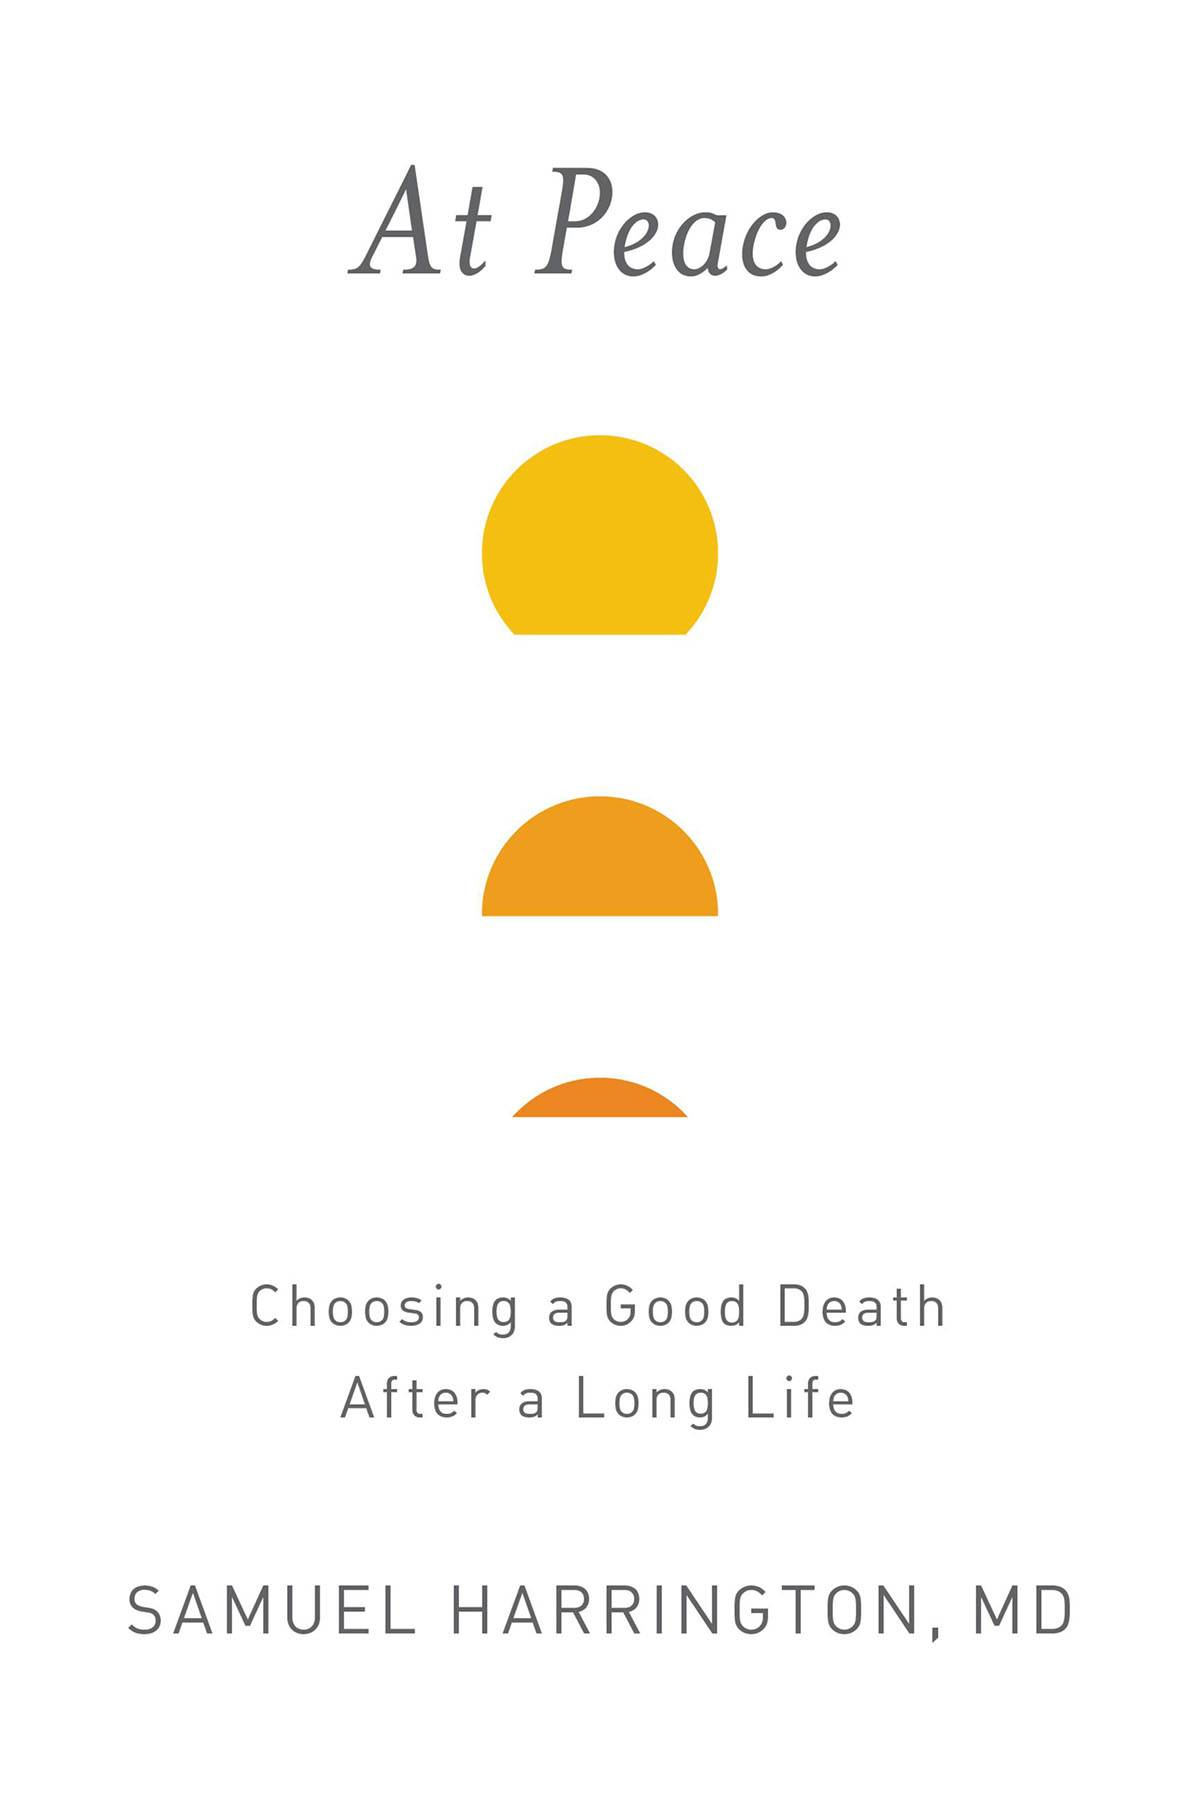 At Peace: Choosing a Good Death After a Long Life